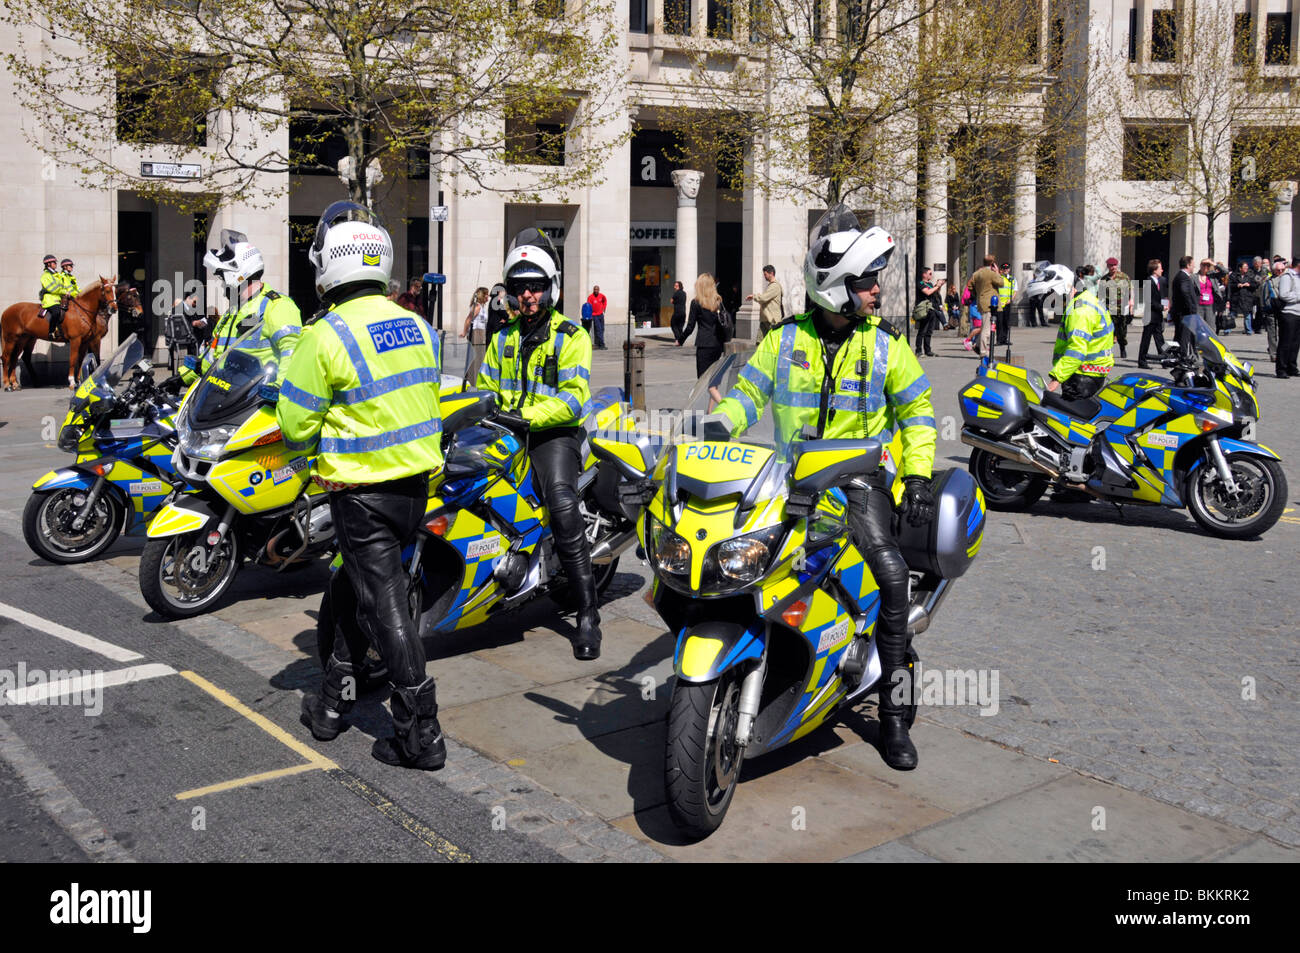 City of London motorbike police waiting to escort a parade - Stock Image